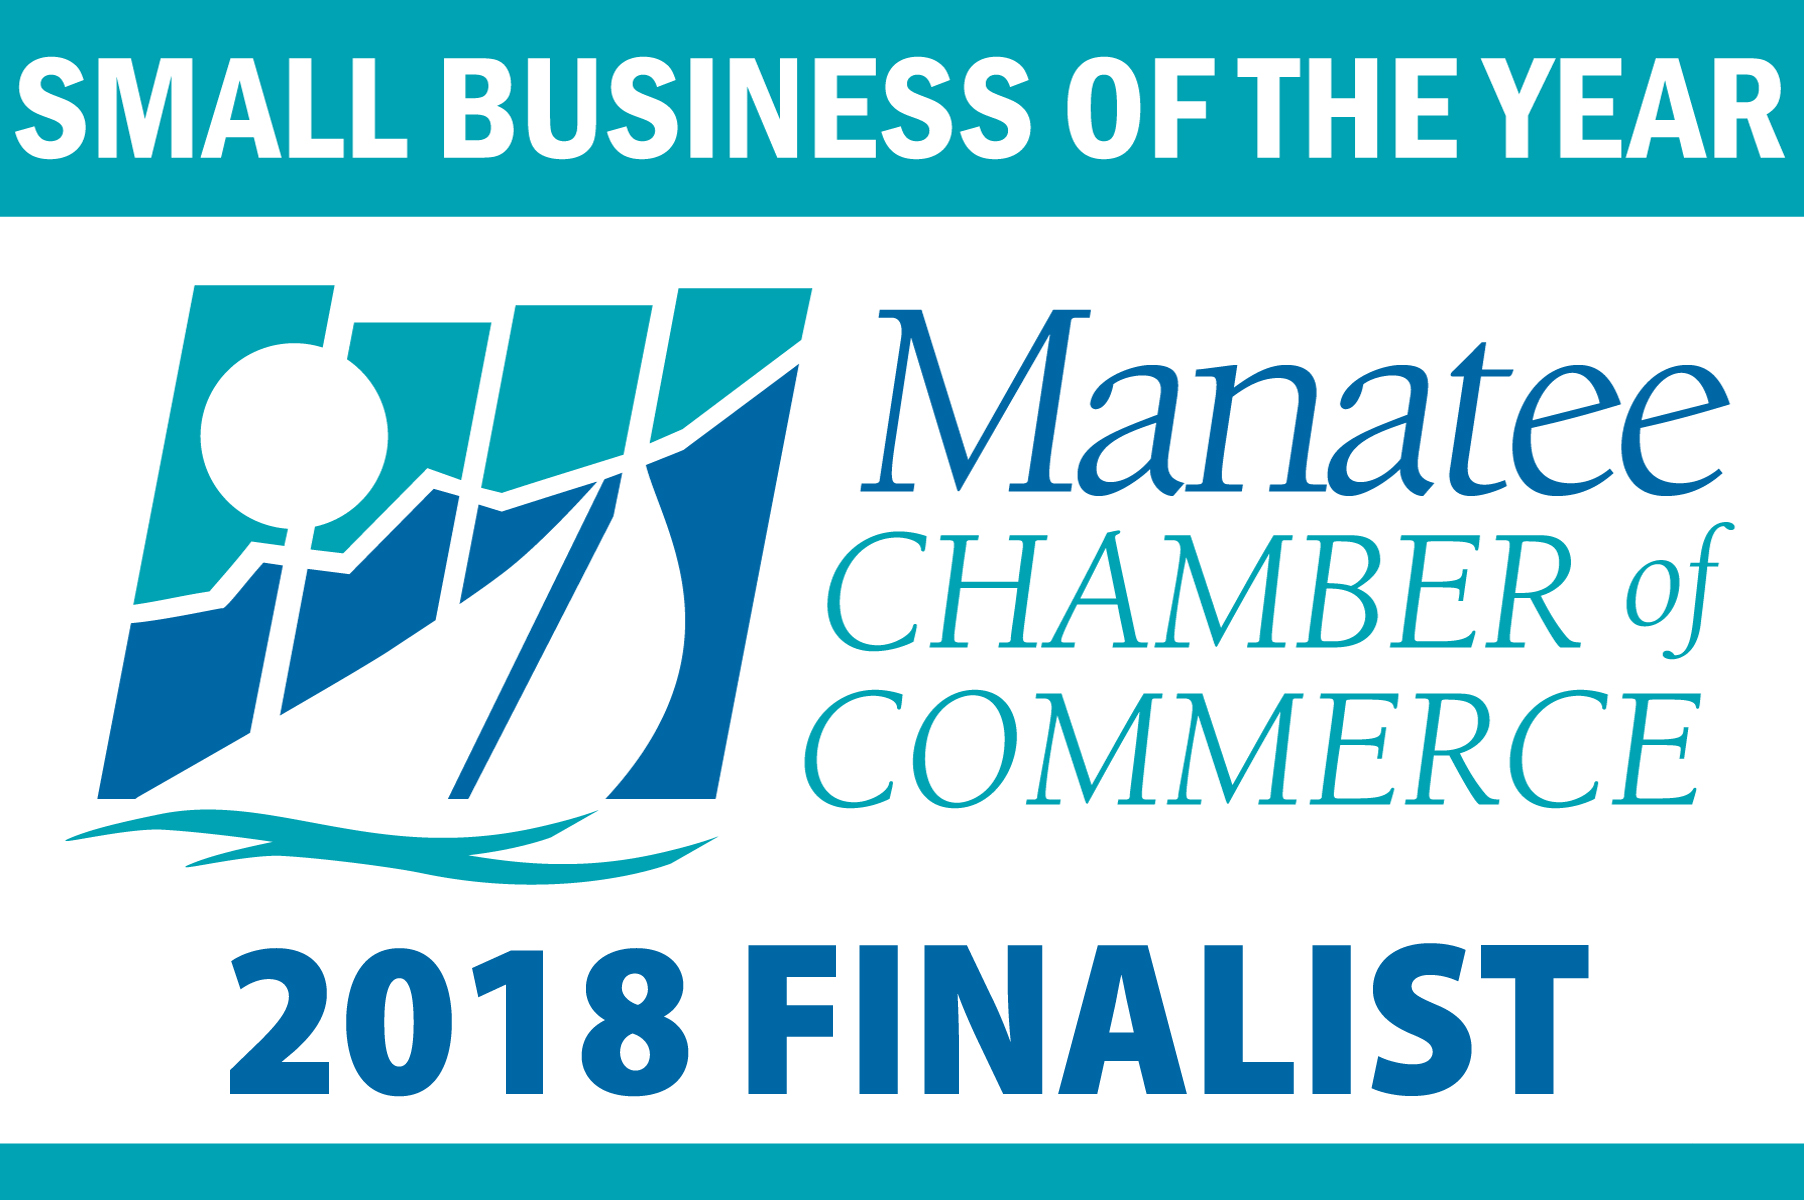 Small Business of Year Logo 2018 FINALIST